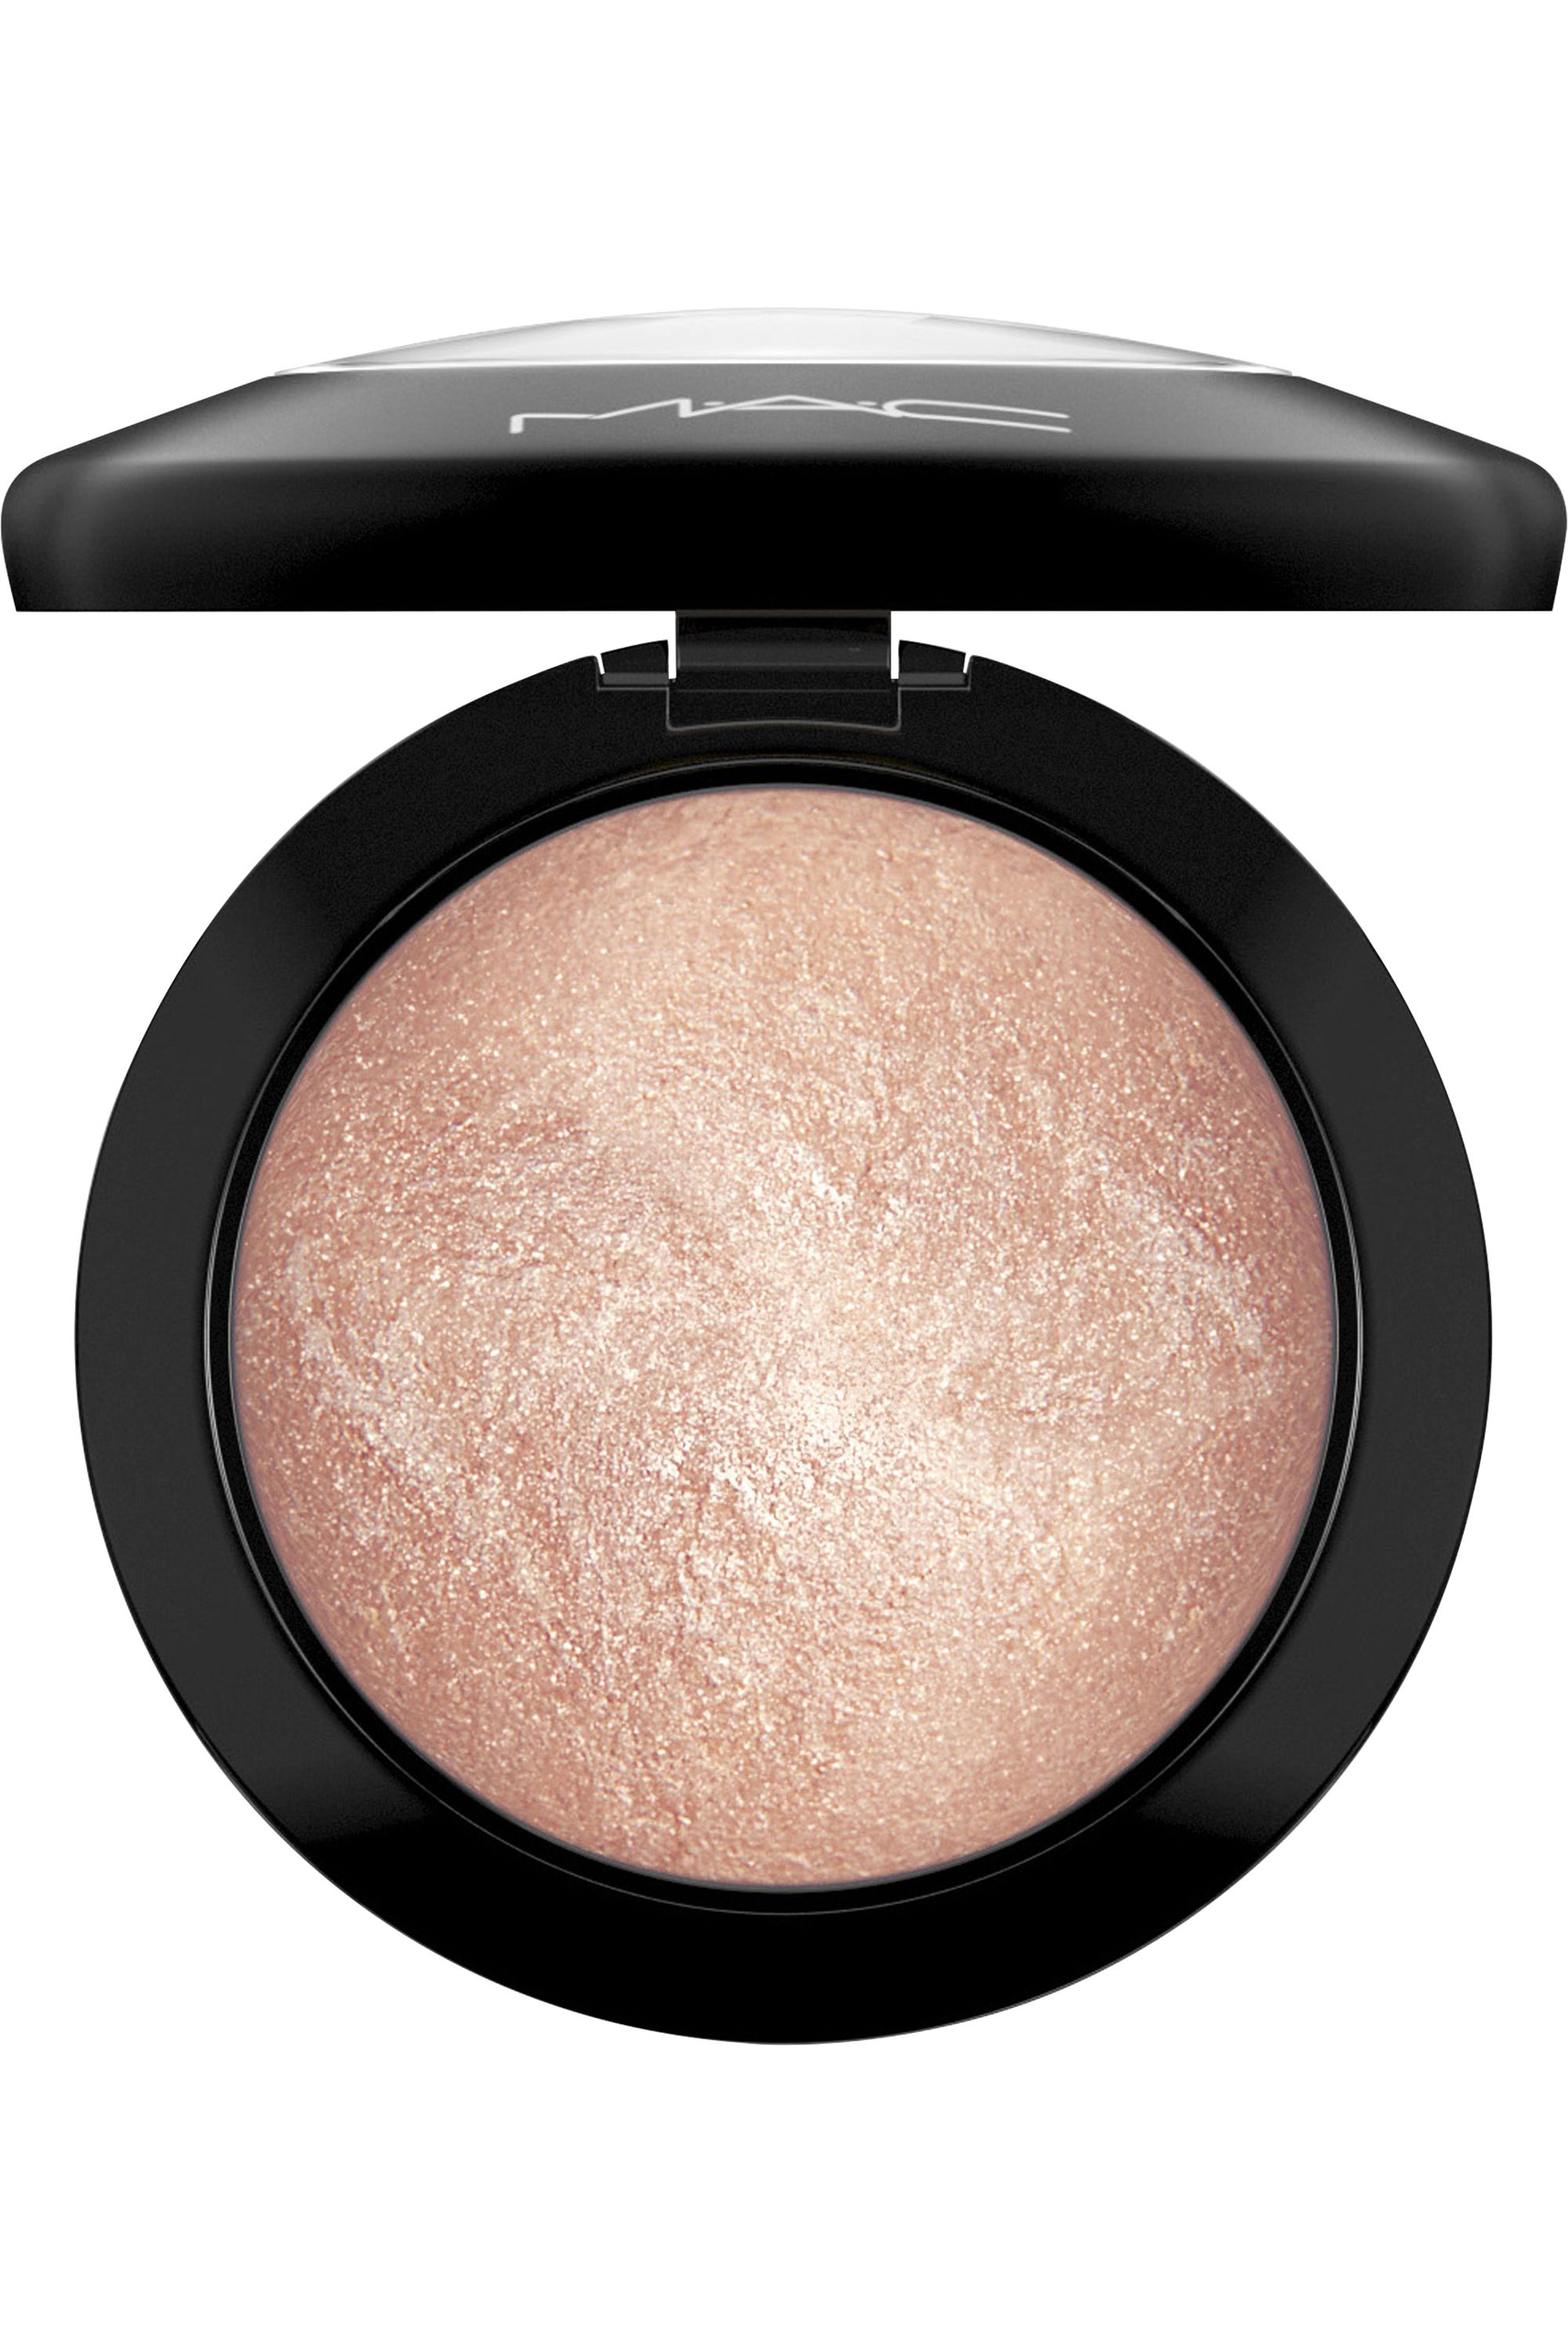 Blissim : M.A.C - Poudre Compacte Mineralize Skinfinish - Soft And Gentle